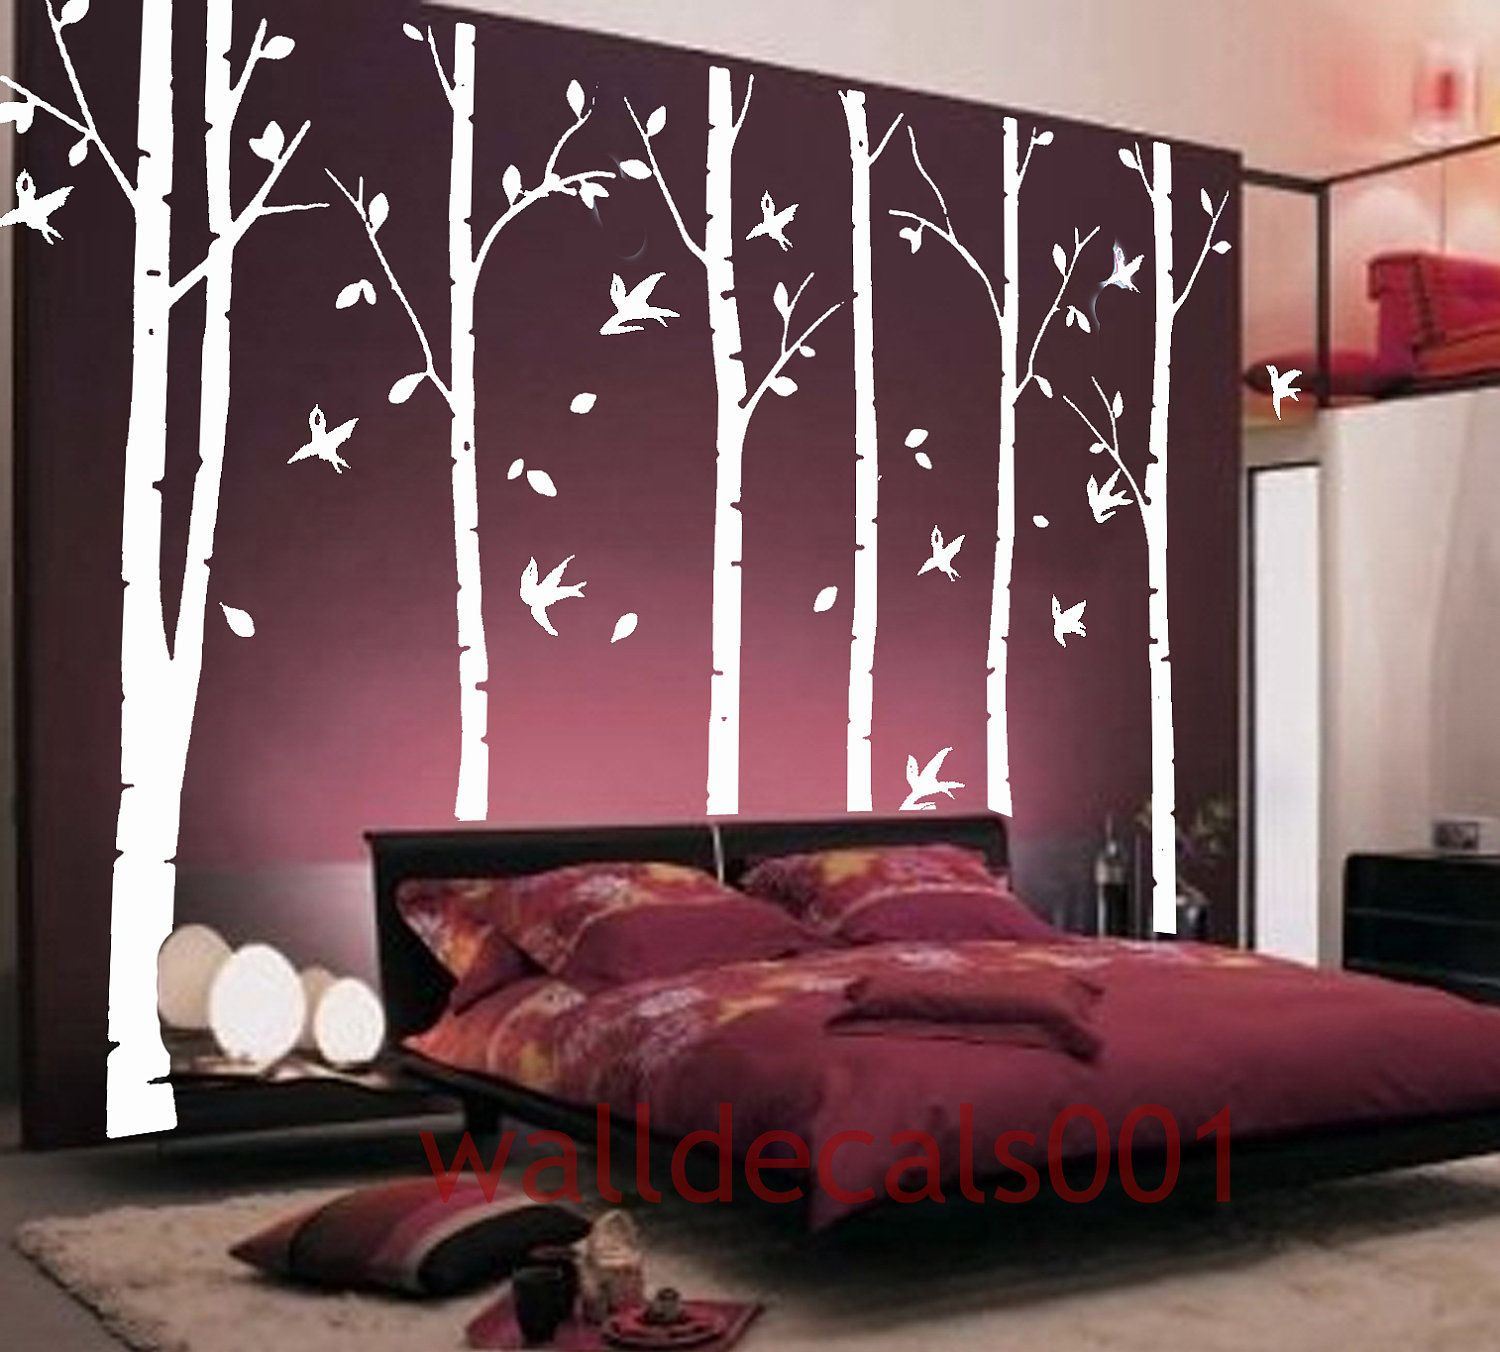 wall decal tree decal kids decals wall stickers kids wall art home wall decal tree decal kids decals wall stickers kids wall art home decor forest decal wall decor murals graphic 6 100